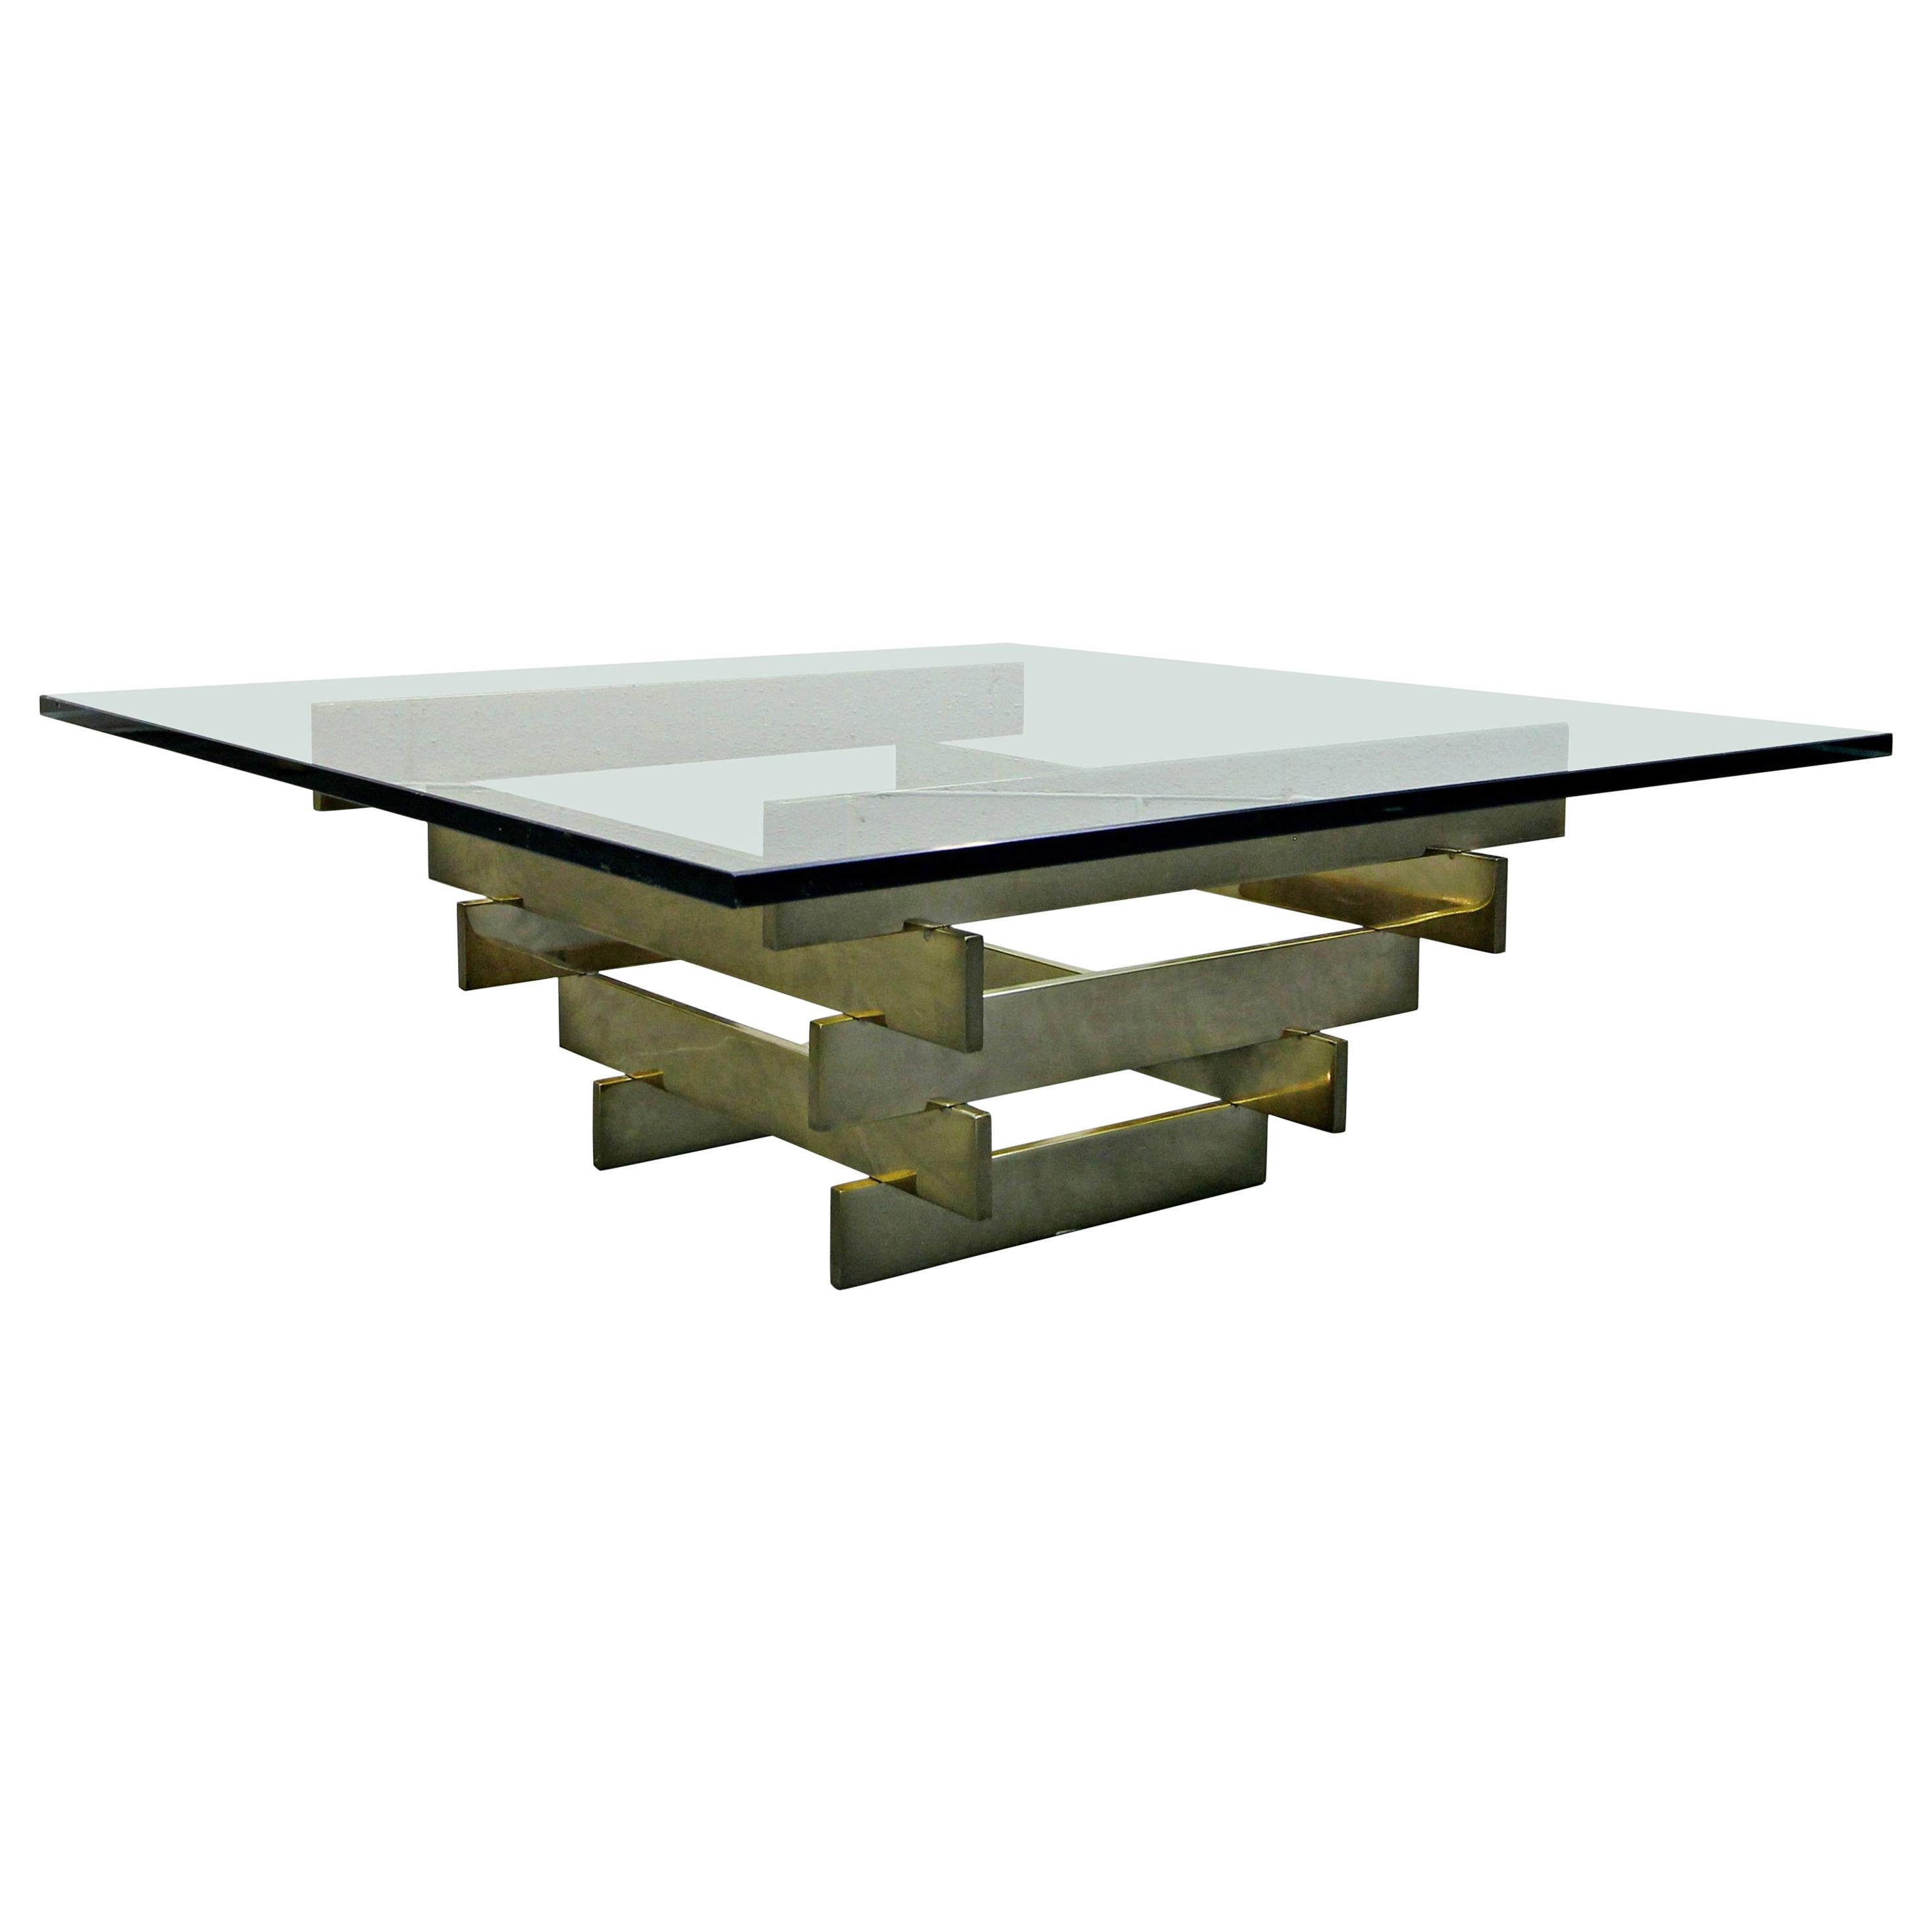 Habitat Couchtisch Paul Mayen Furniture Lighting Tables More 89 For Sale At 1stdibs